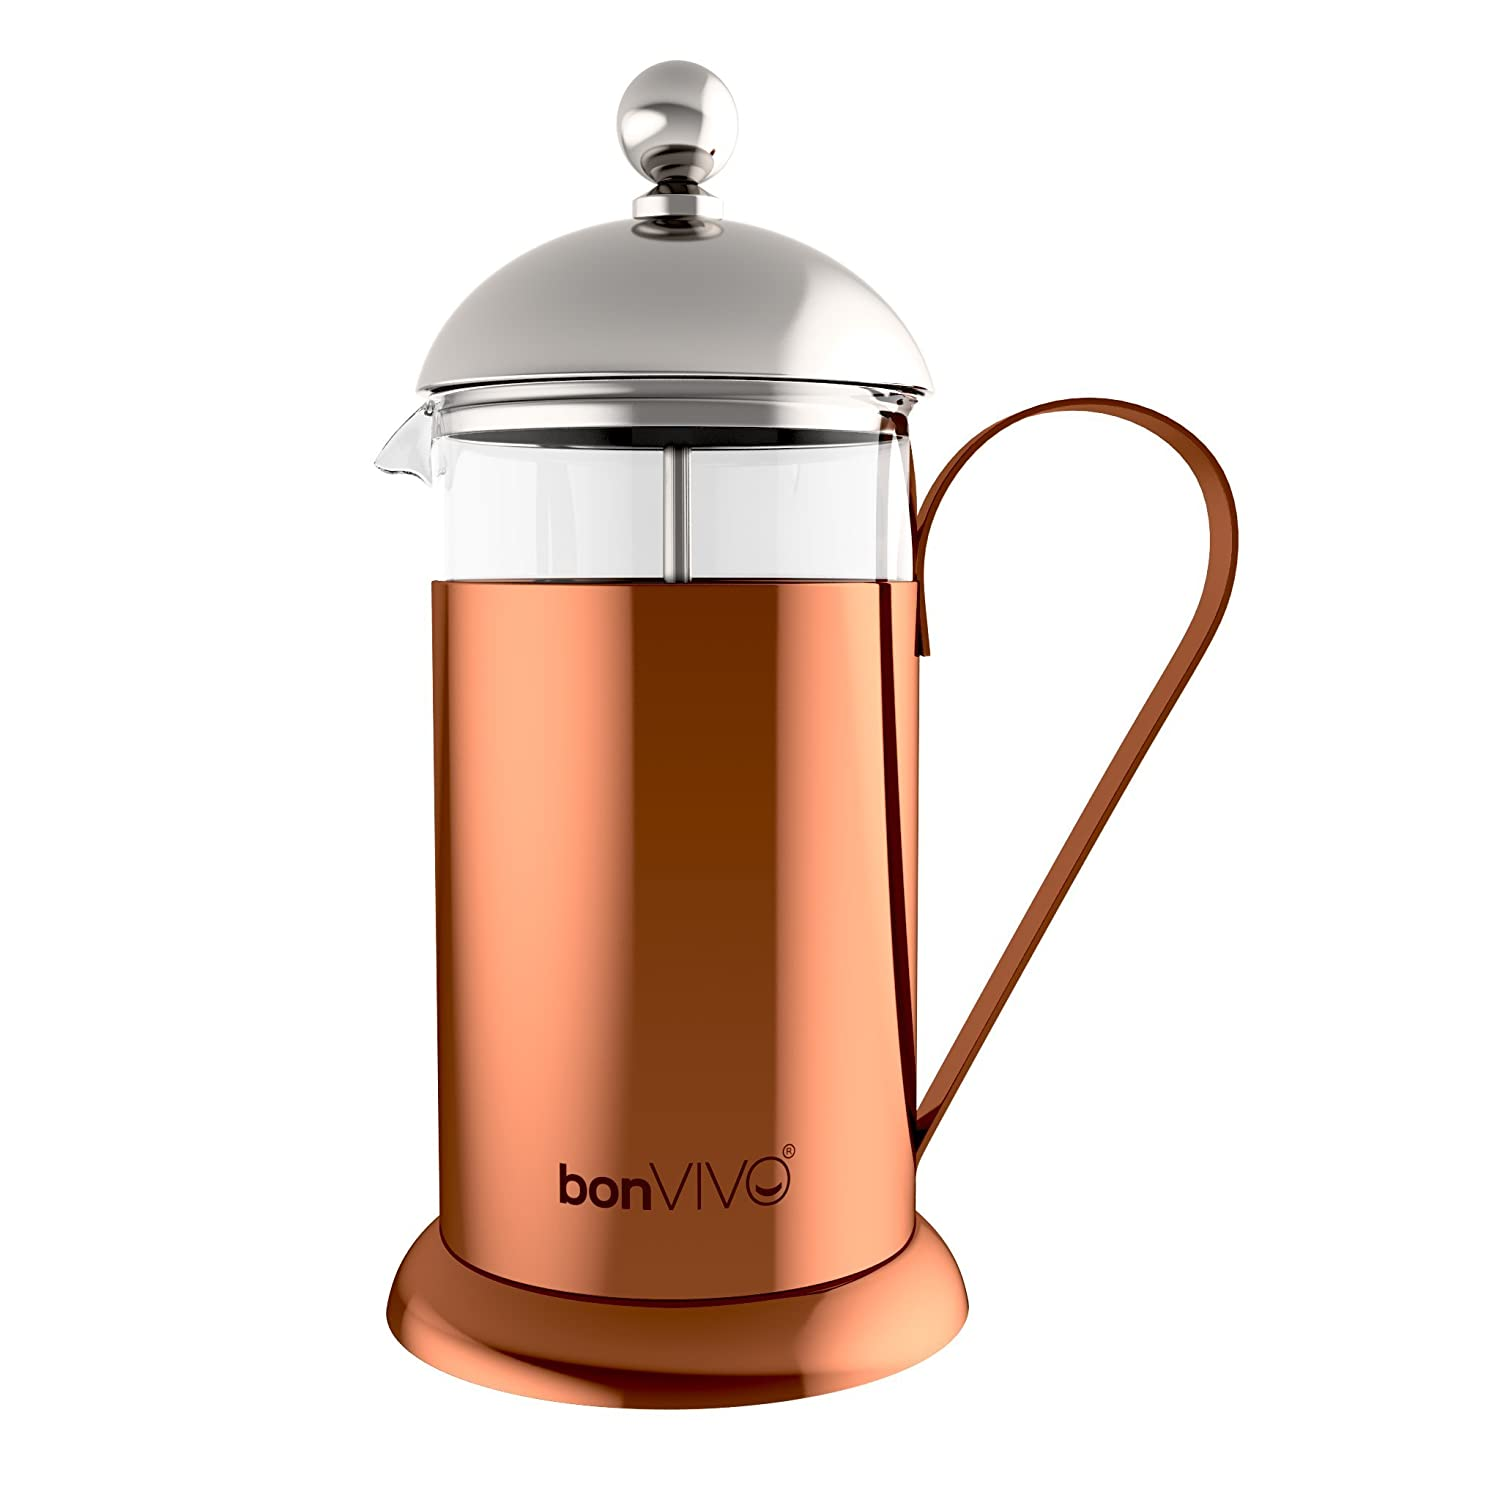 bonVIVO GAZETARO II French Press Coffee Maker, Stainless Steel Cafetiere With Glass Jug, Coffee Plunger With Filter, Manual Coffee Maker With Copper Finish, Coffee Press In Large (12 oz/035.0 l /350ml) Bonstato